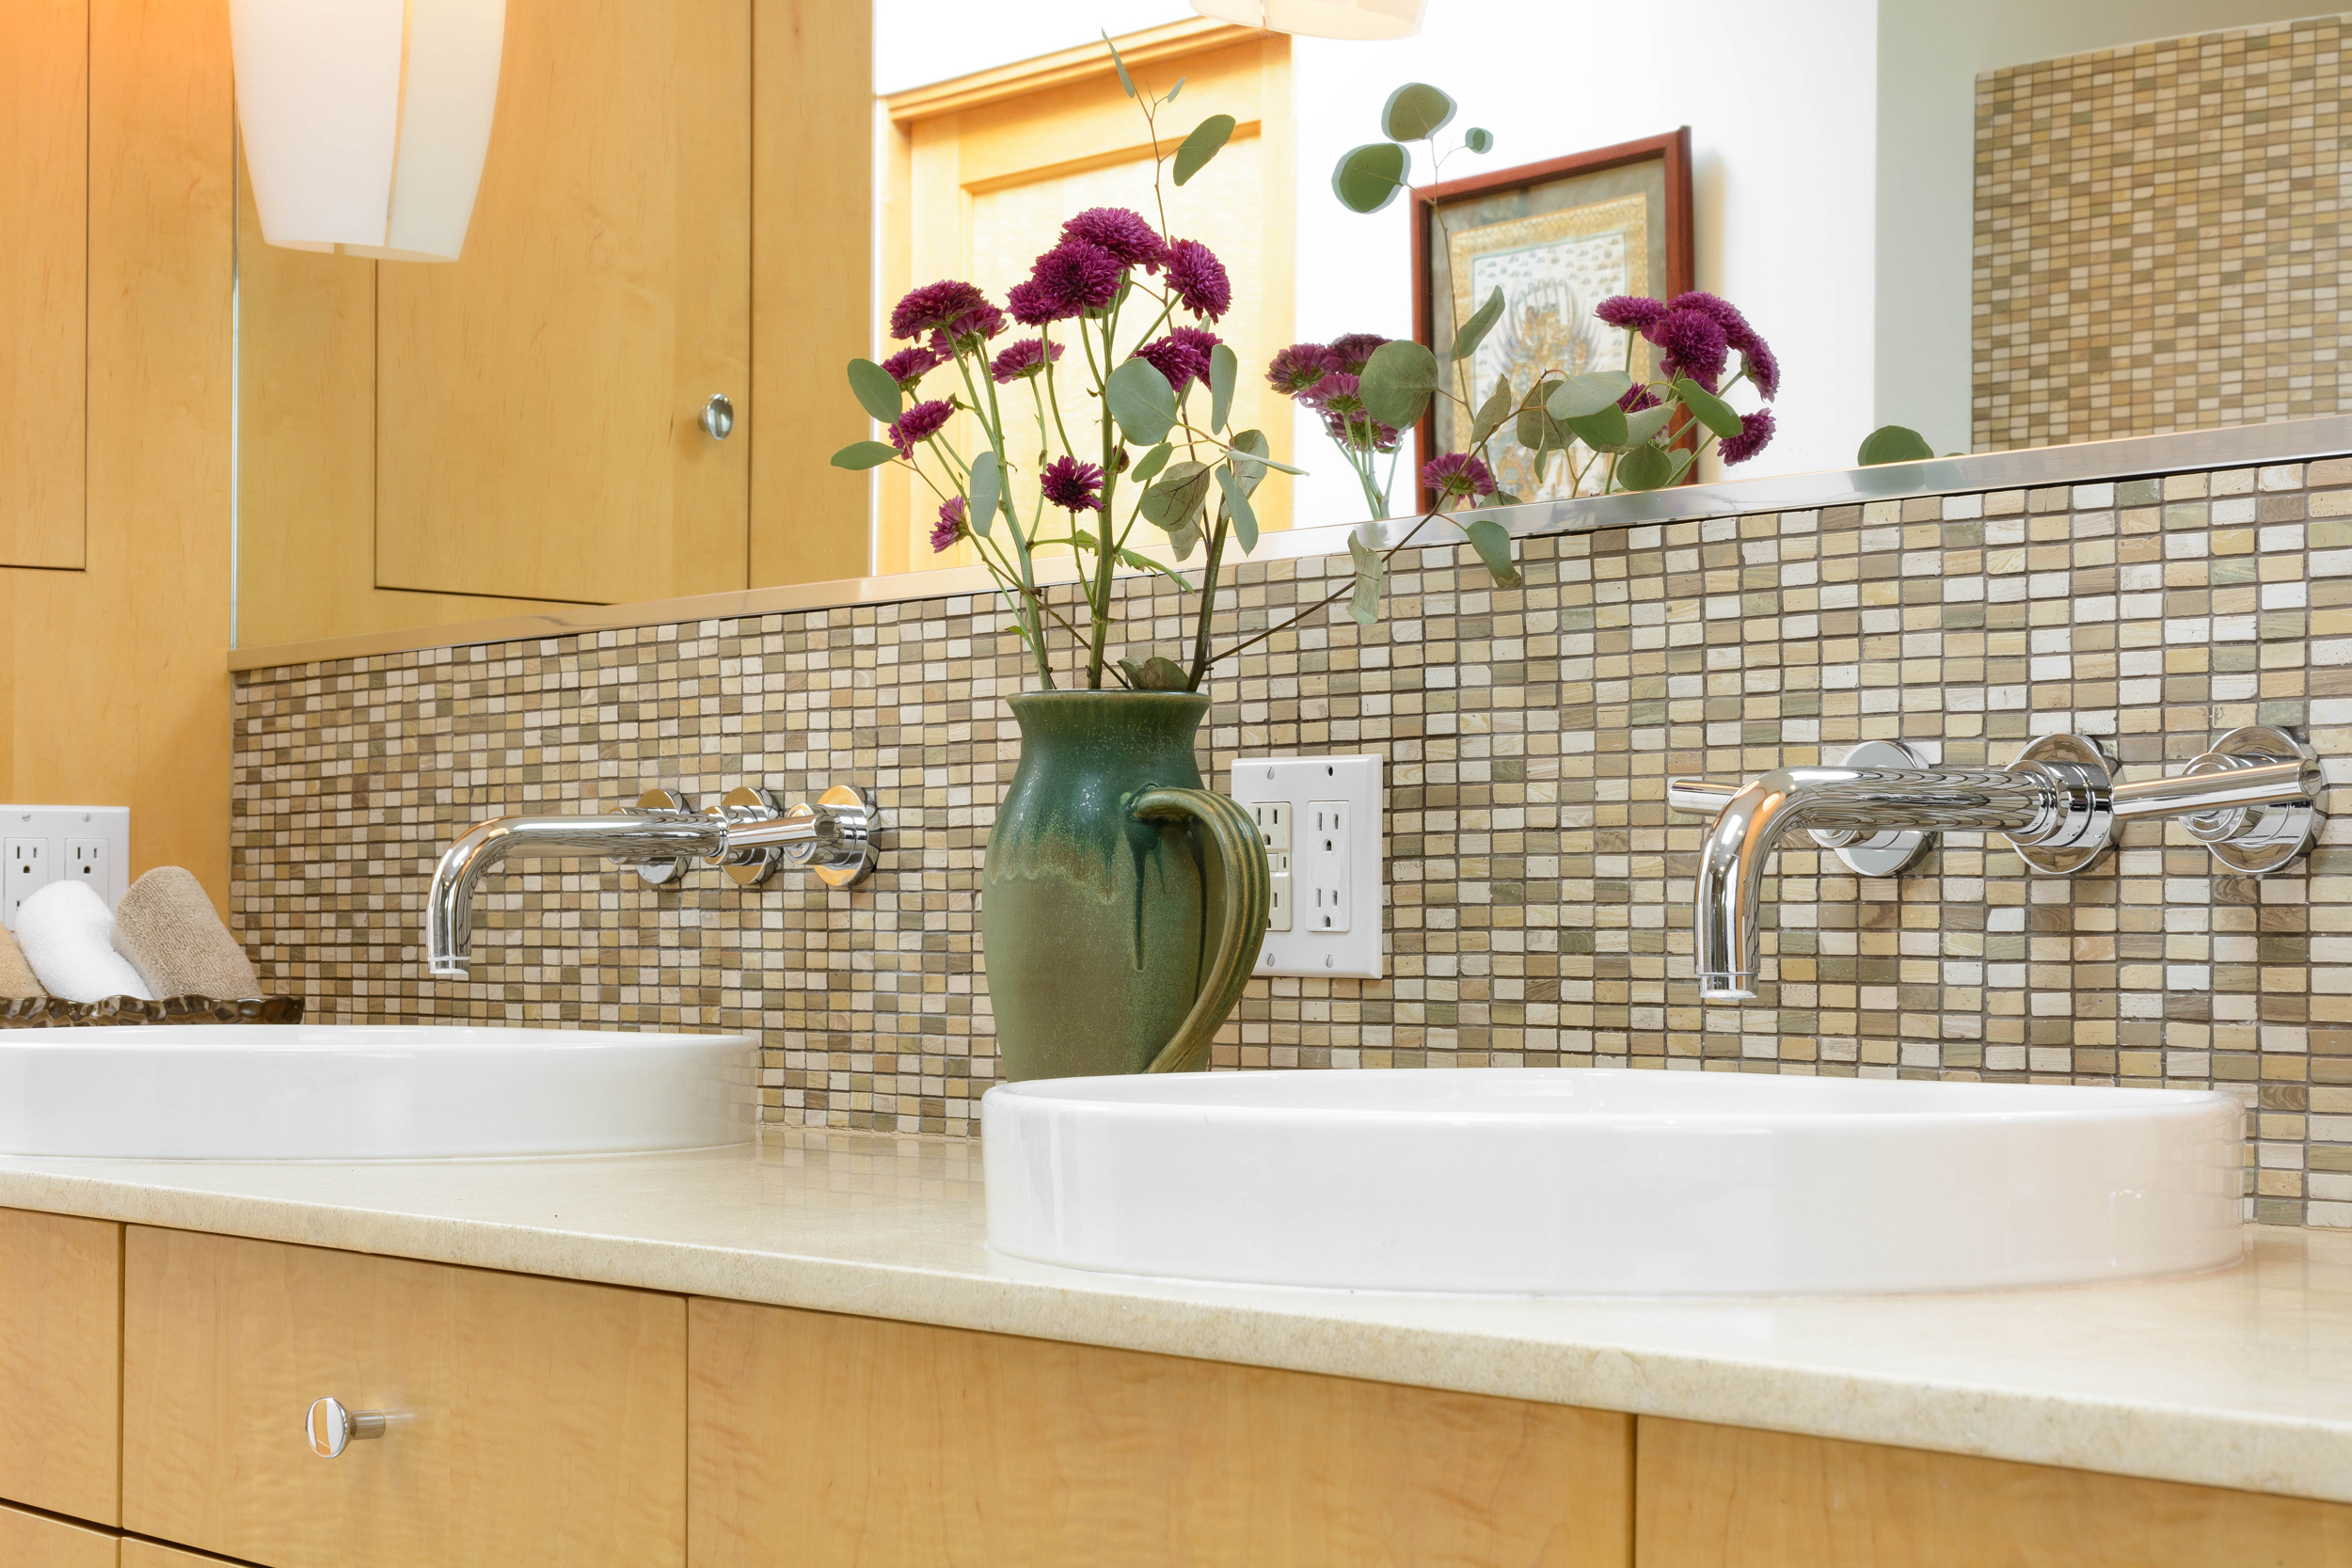 This spa-like master bathroom showcases white double vessel sinks with sleek wall-mounted widespread faucets on a mosaic tile backsplash